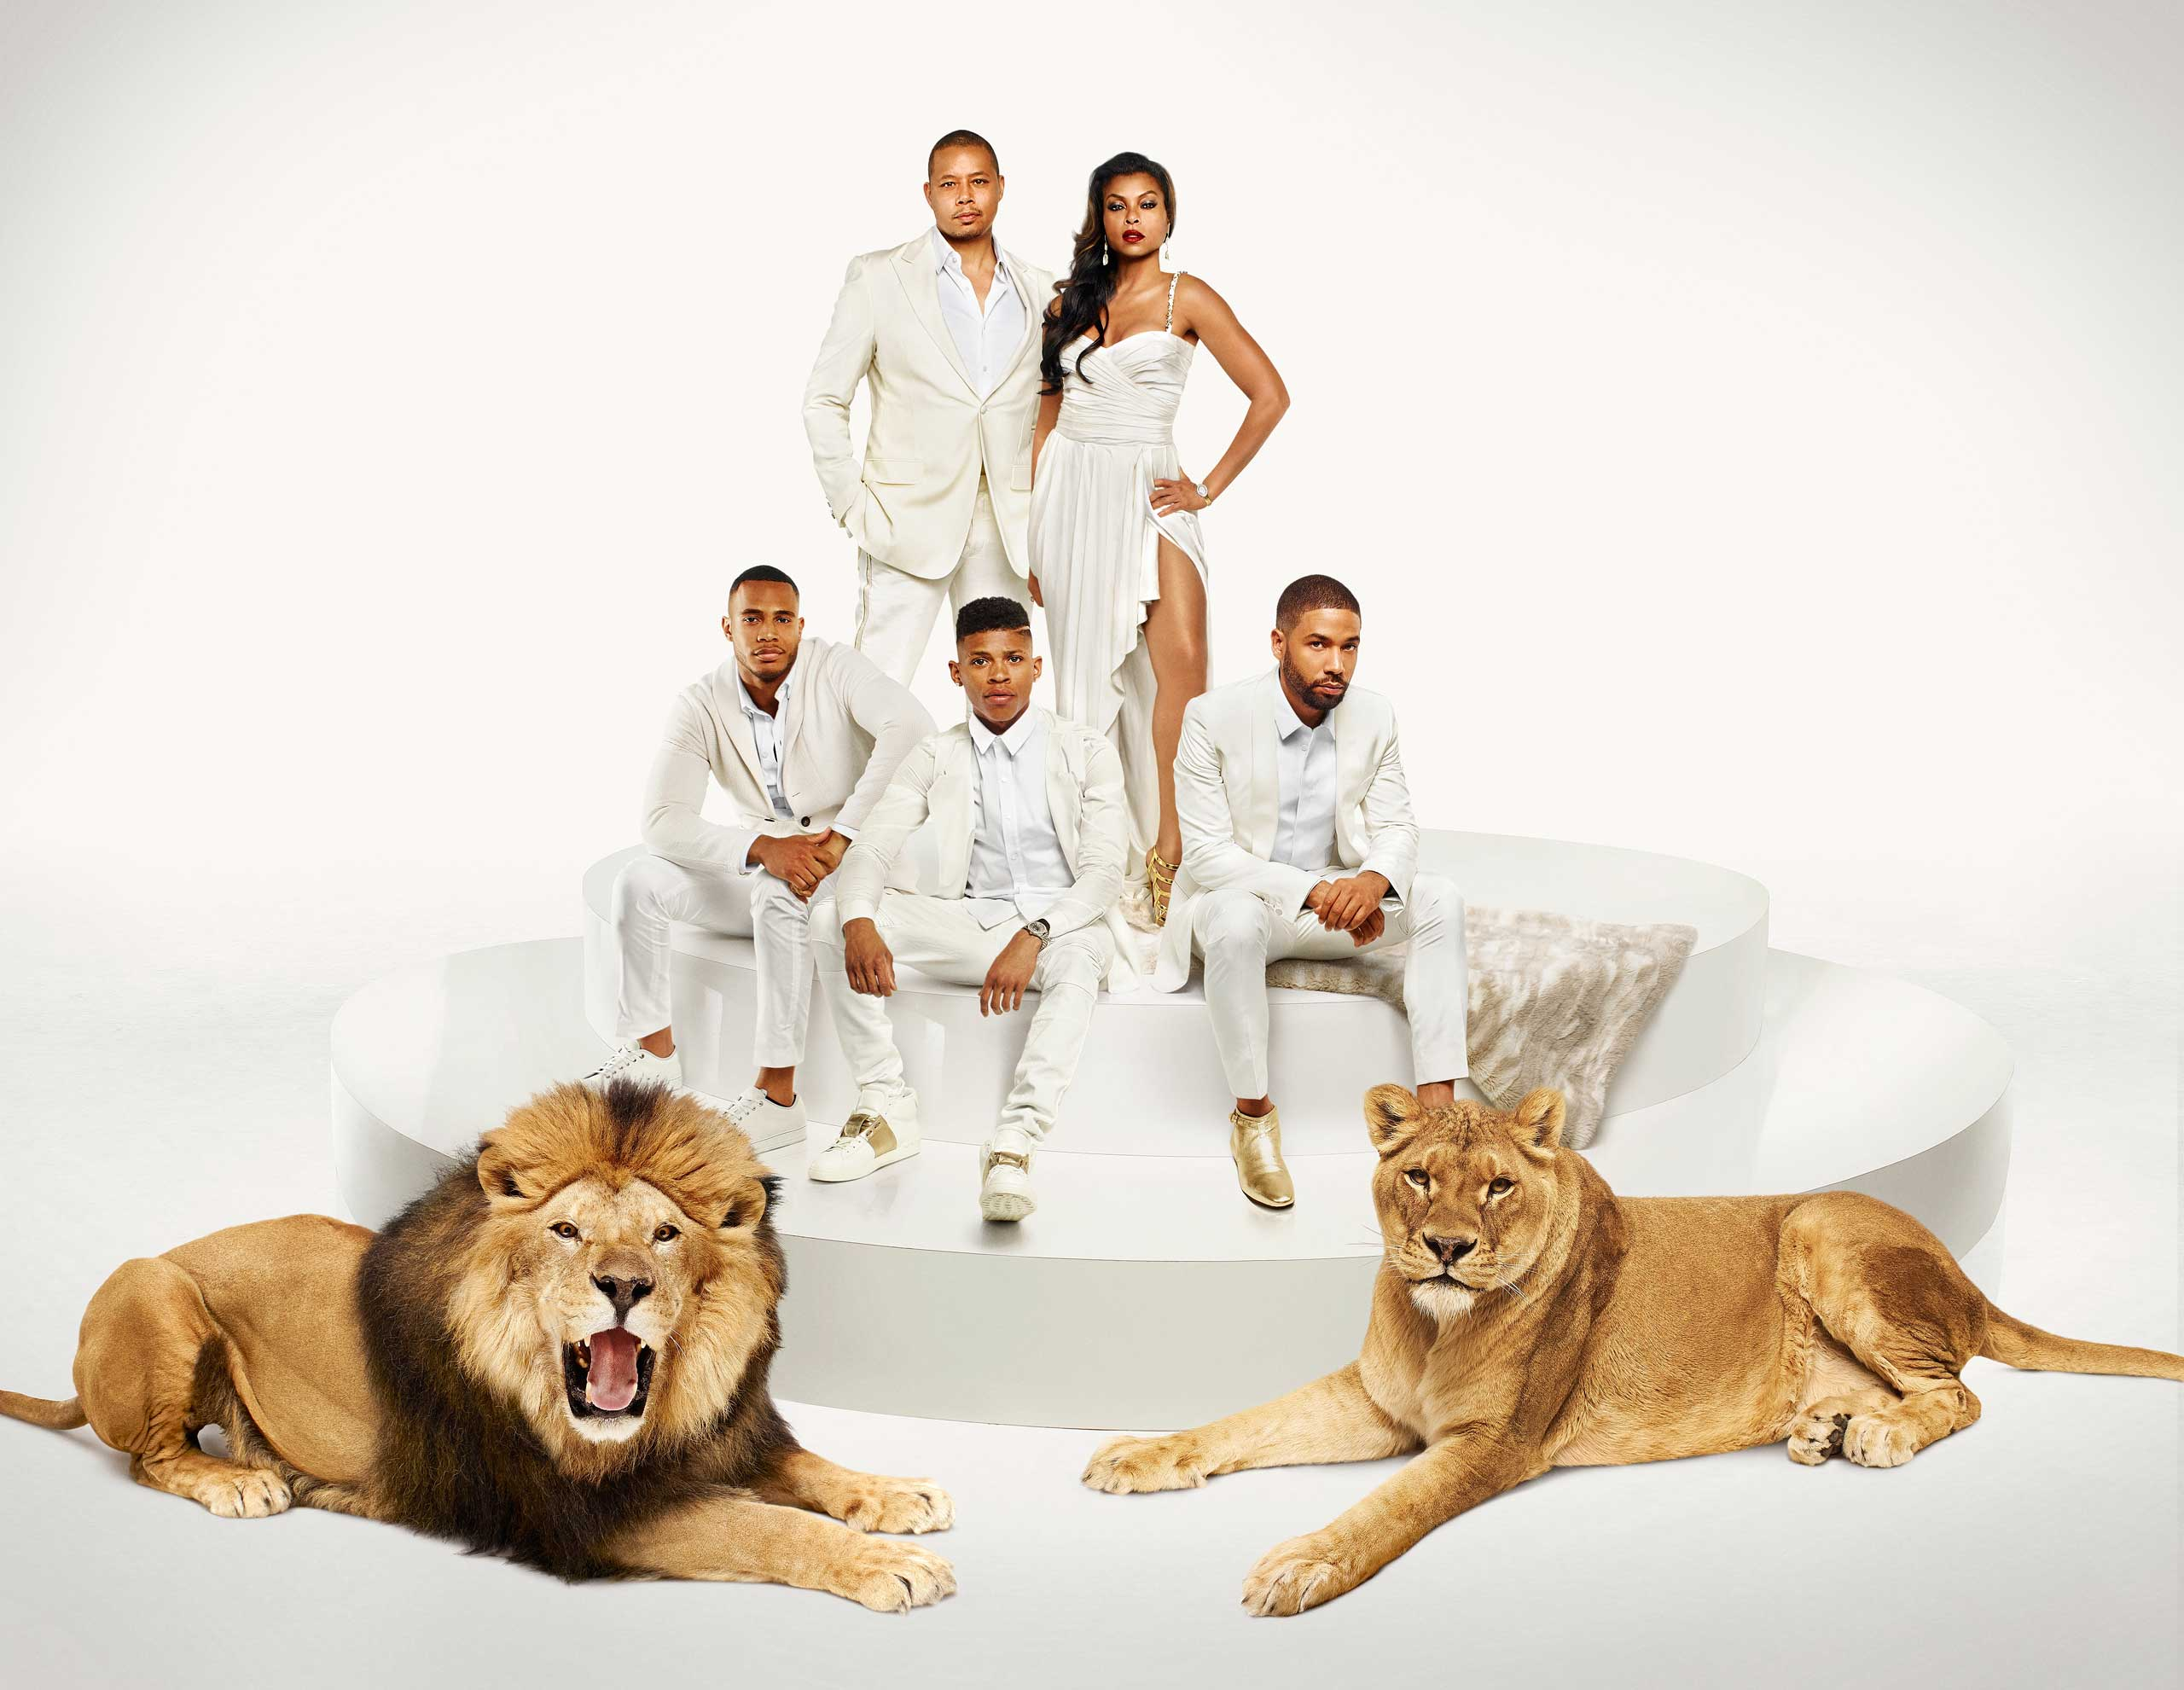 EMPIRE: Cast Pictured L-R: (Bottom Row) Trai Byers as Andre Lyon, Bryshere Gray as Hakeem Lyon and Jussie Smollett as Jamal Lyon (Top Row) Terrence Howard as Lucious Lyon and Taraji P. Henson as Cookie Lyon in EMPIRE.